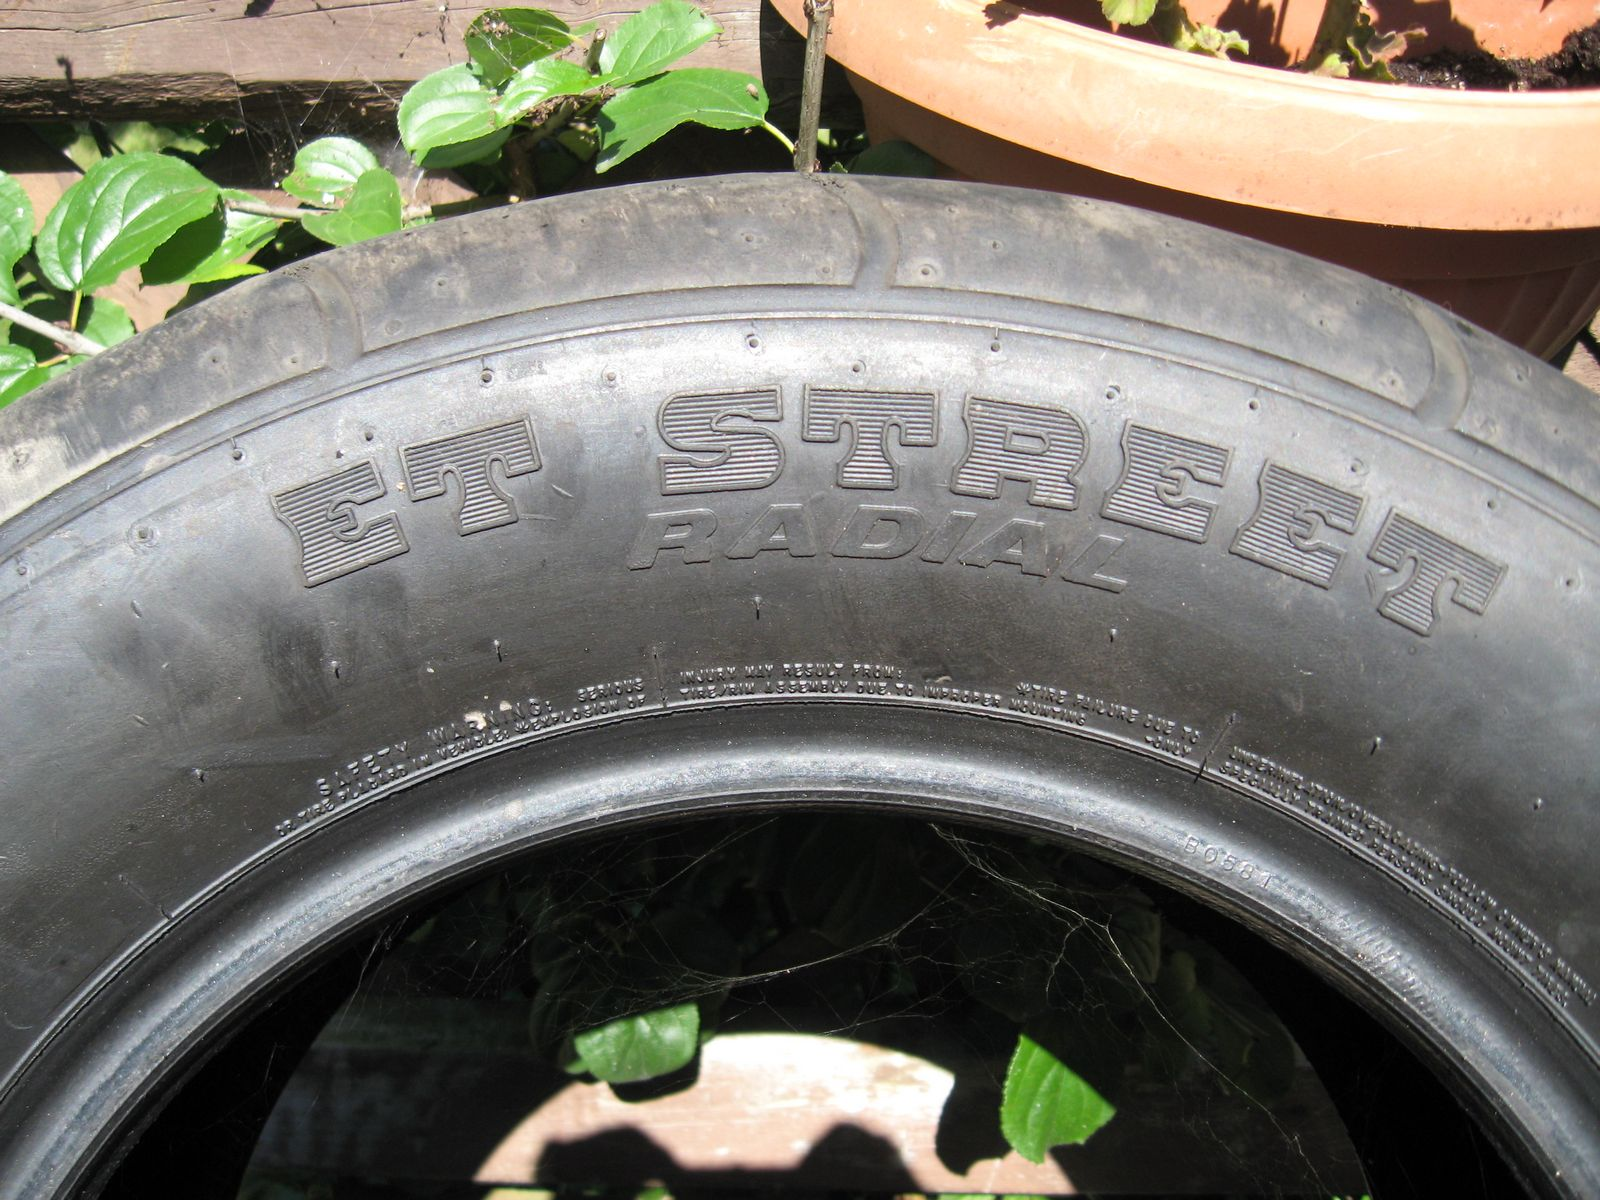 Drag radials for sale -  M T Drag Radials Sale Tn_picture 004 Jpg